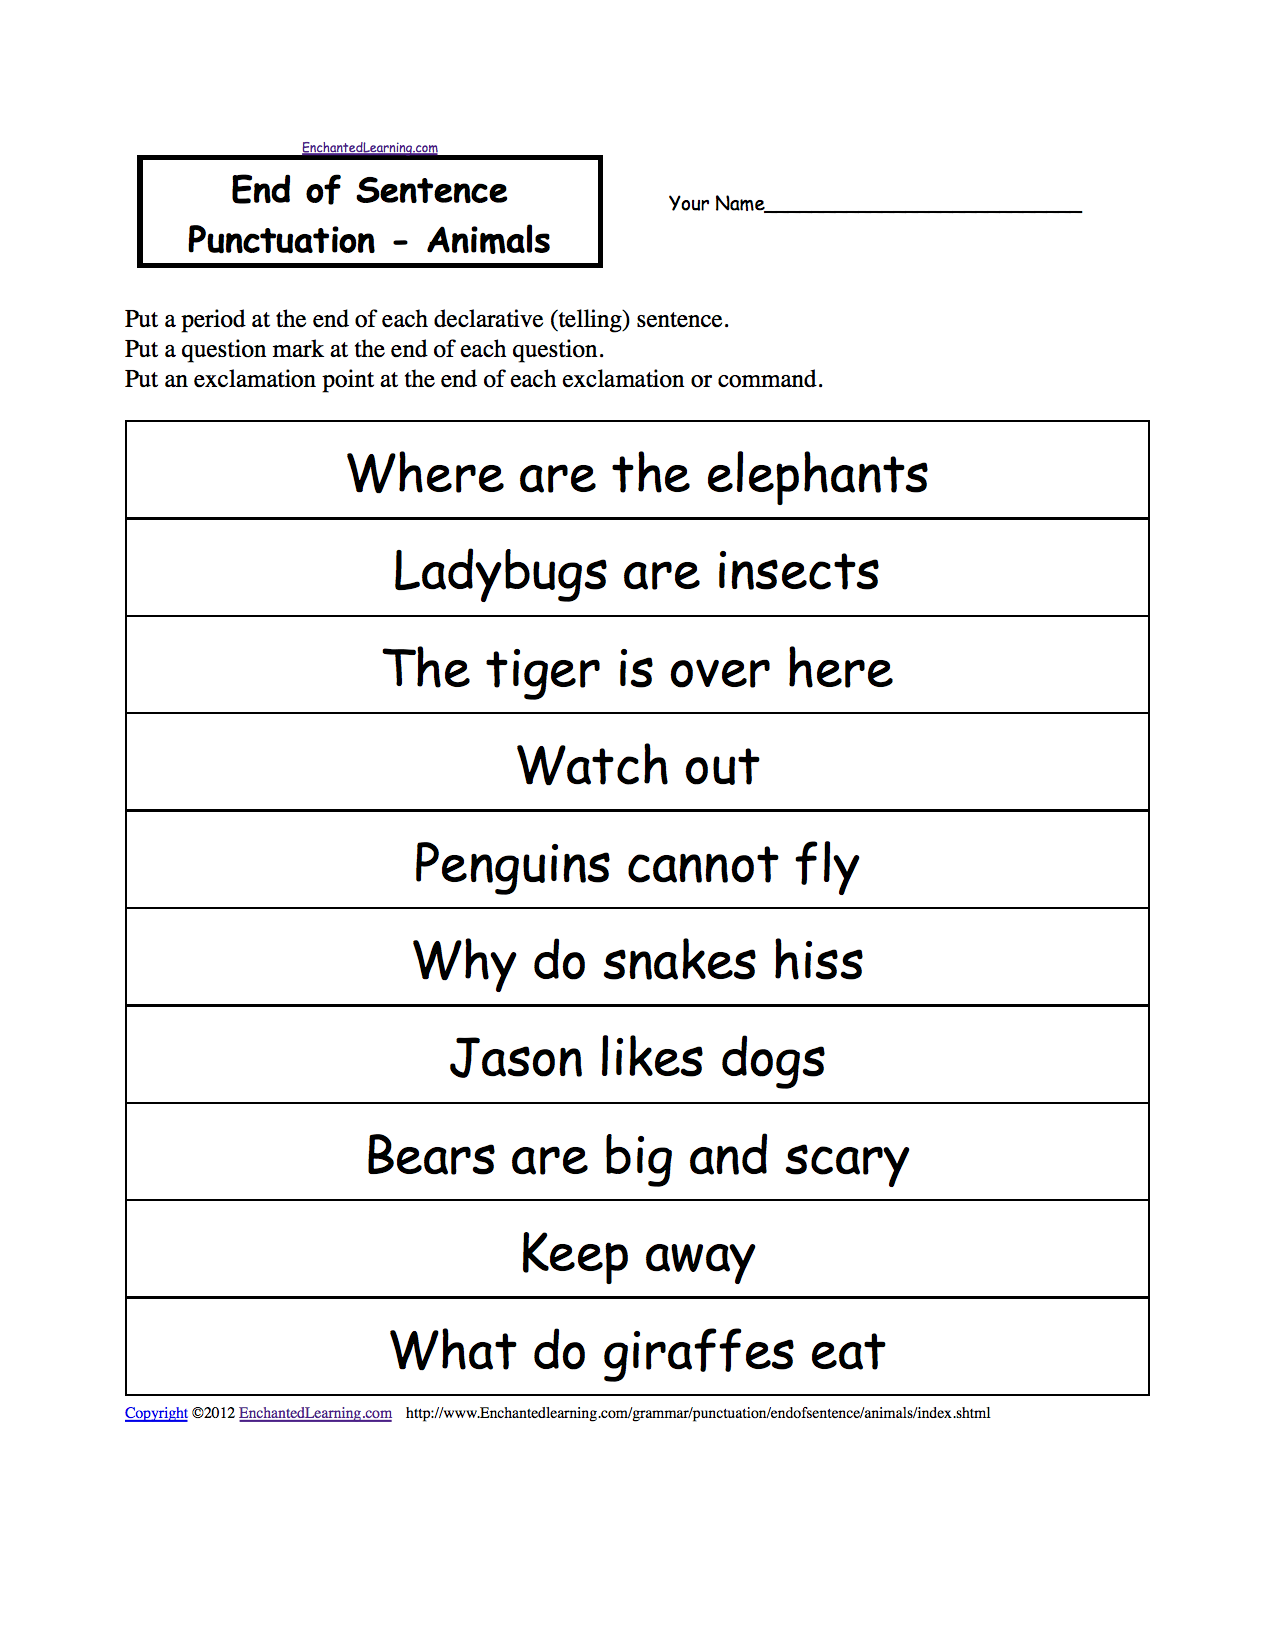 Worksheets Ending Punctuation Worksheets end of sentence punctuation printable worksheets animals